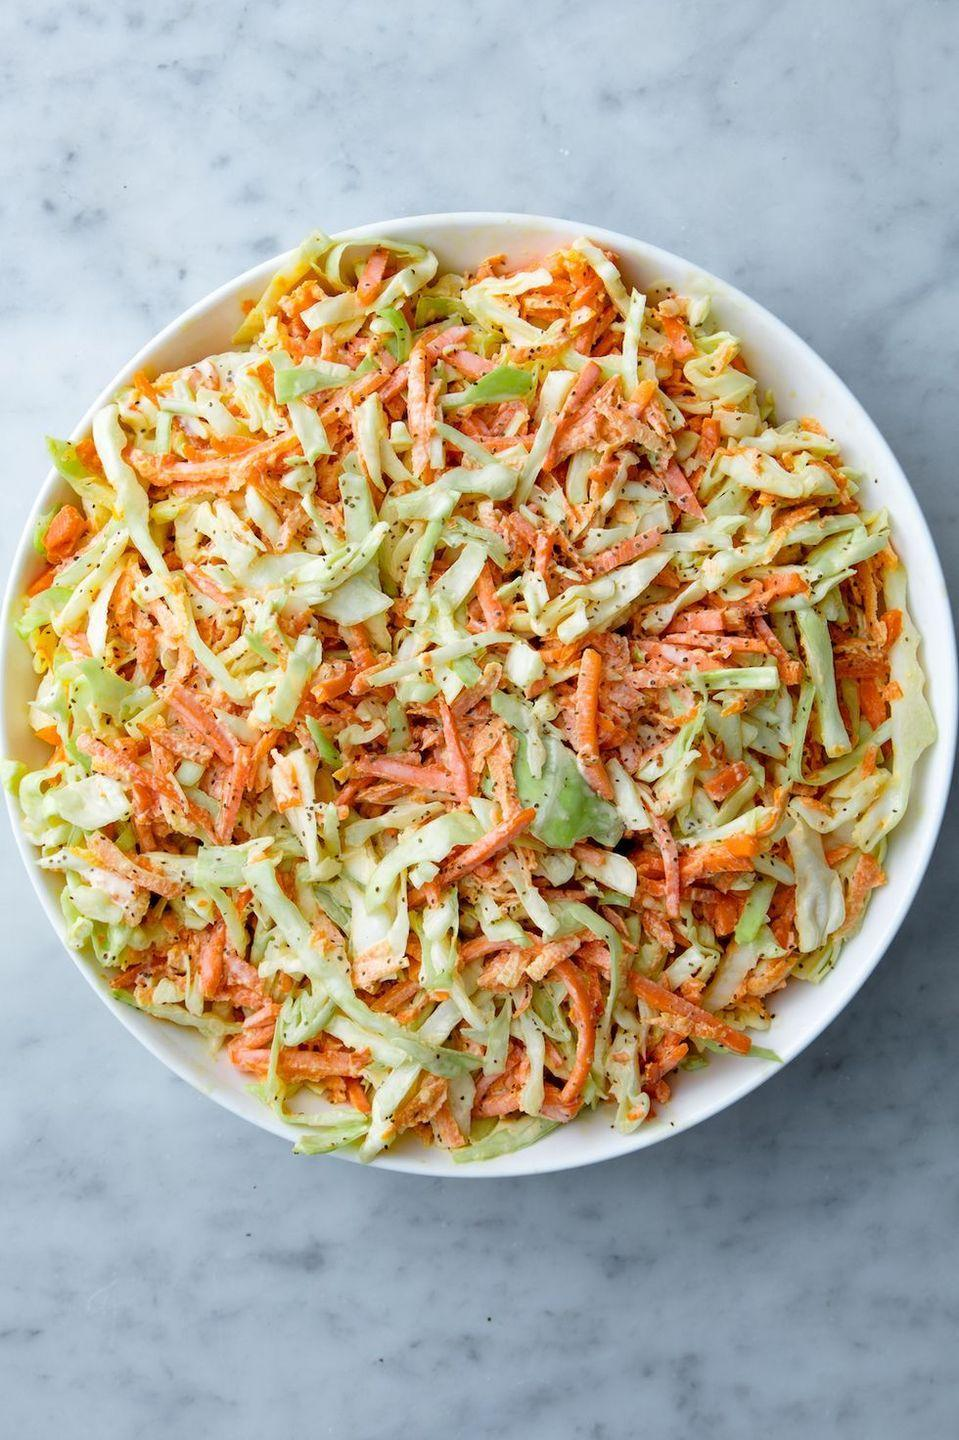 "<p>No summer party is complete without a big bowl of coleslaw, and we happen to think our recipe is the absolute best.</p><p>Get the <a href=""https://www.delish.com/uk/cooking/recipes/a30425814/best-homemade-coleslaw-recipe/"" rel=""nofollow noopener"" target=""_blank"" data-ylk=""slk:Classic Coleslaw"" class=""link rapid-noclick-resp"">Classic Coleslaw</a> recipe.</p>"